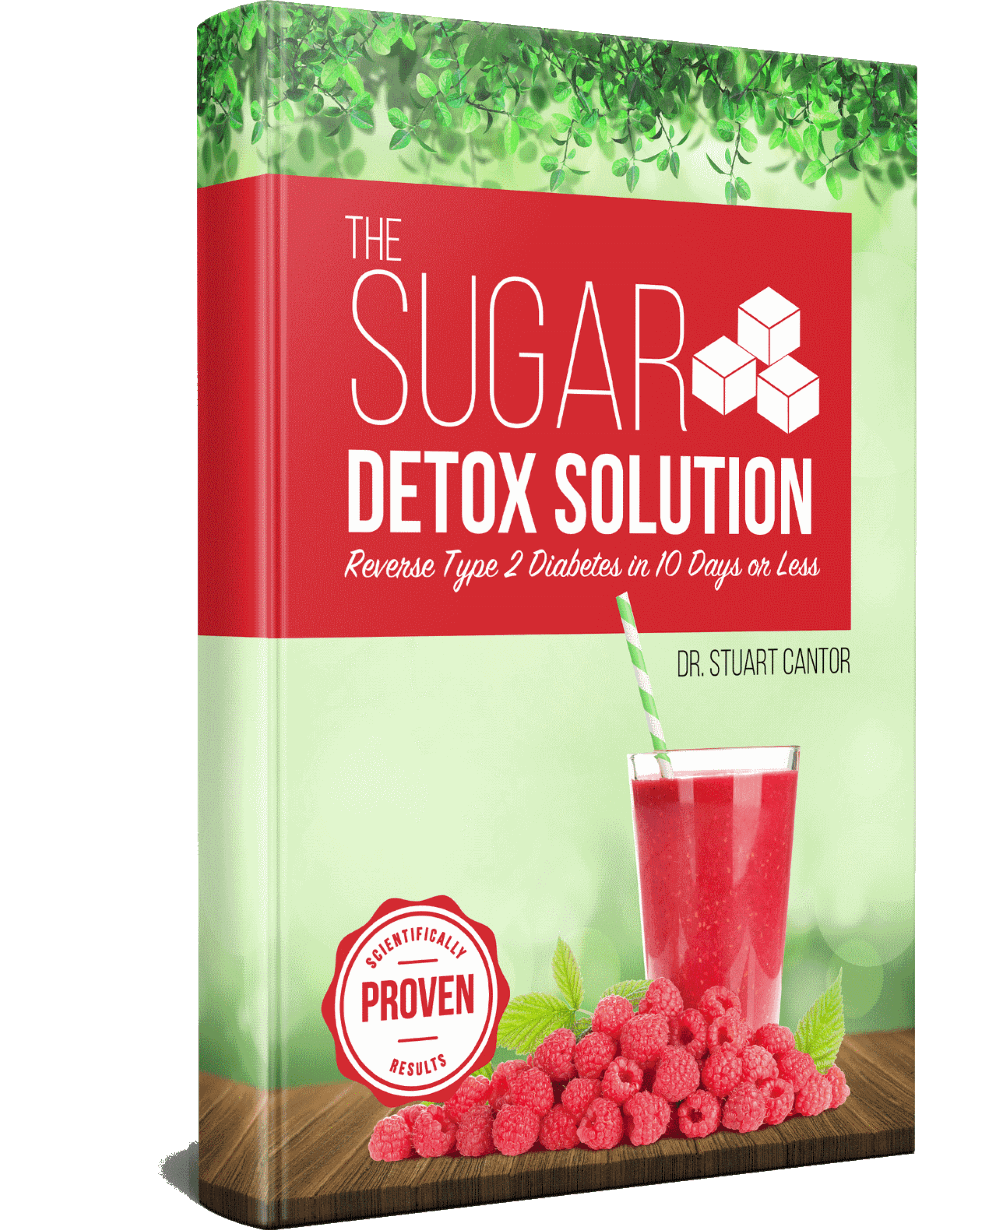 The Sugar Detox Solution Review – READ THIS FIRST!!!